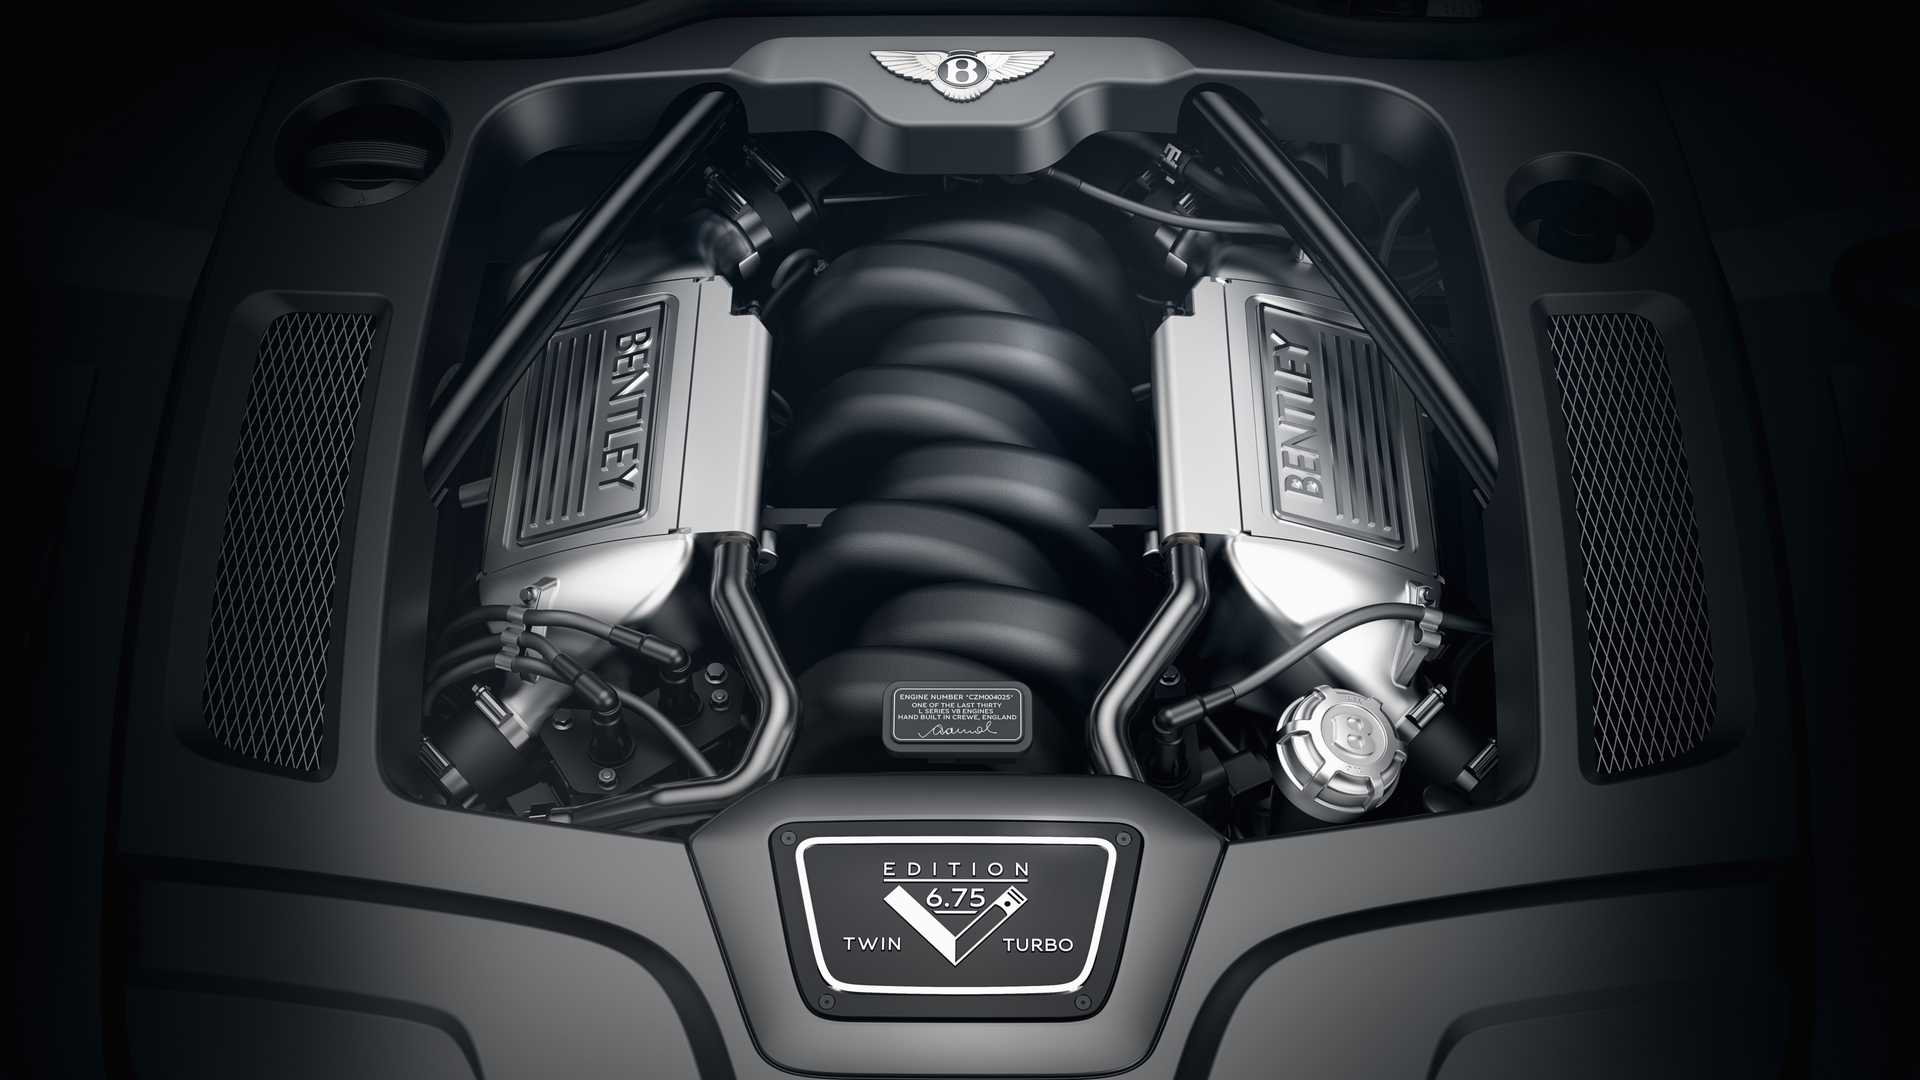 Bentley's 61-Year-Old V8 Engine Has Finally Reached End Of Production